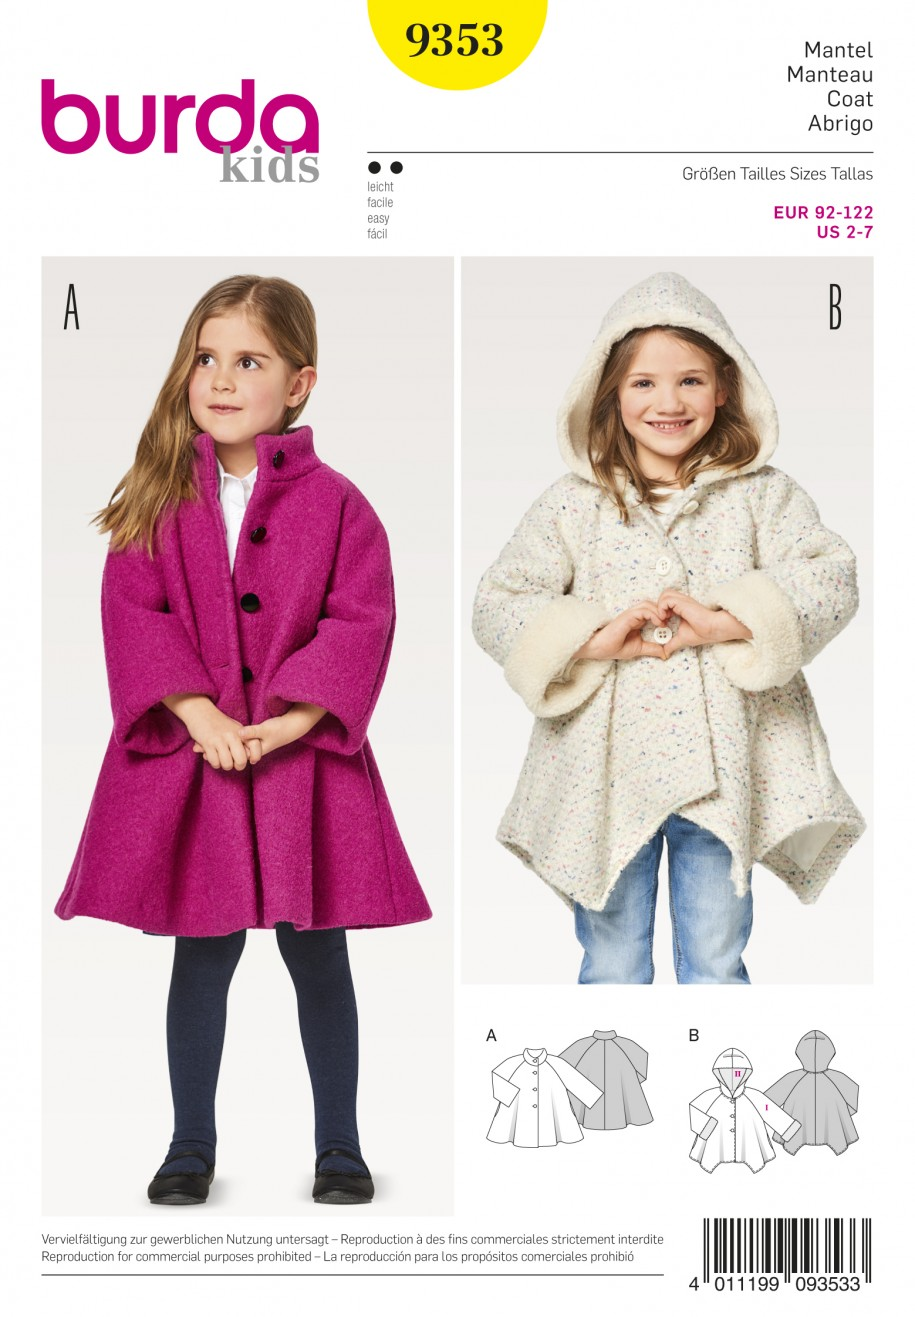 Burda Style Sewing Pattern - 9353 - Child\'s A-Line Coat | Sewing ...